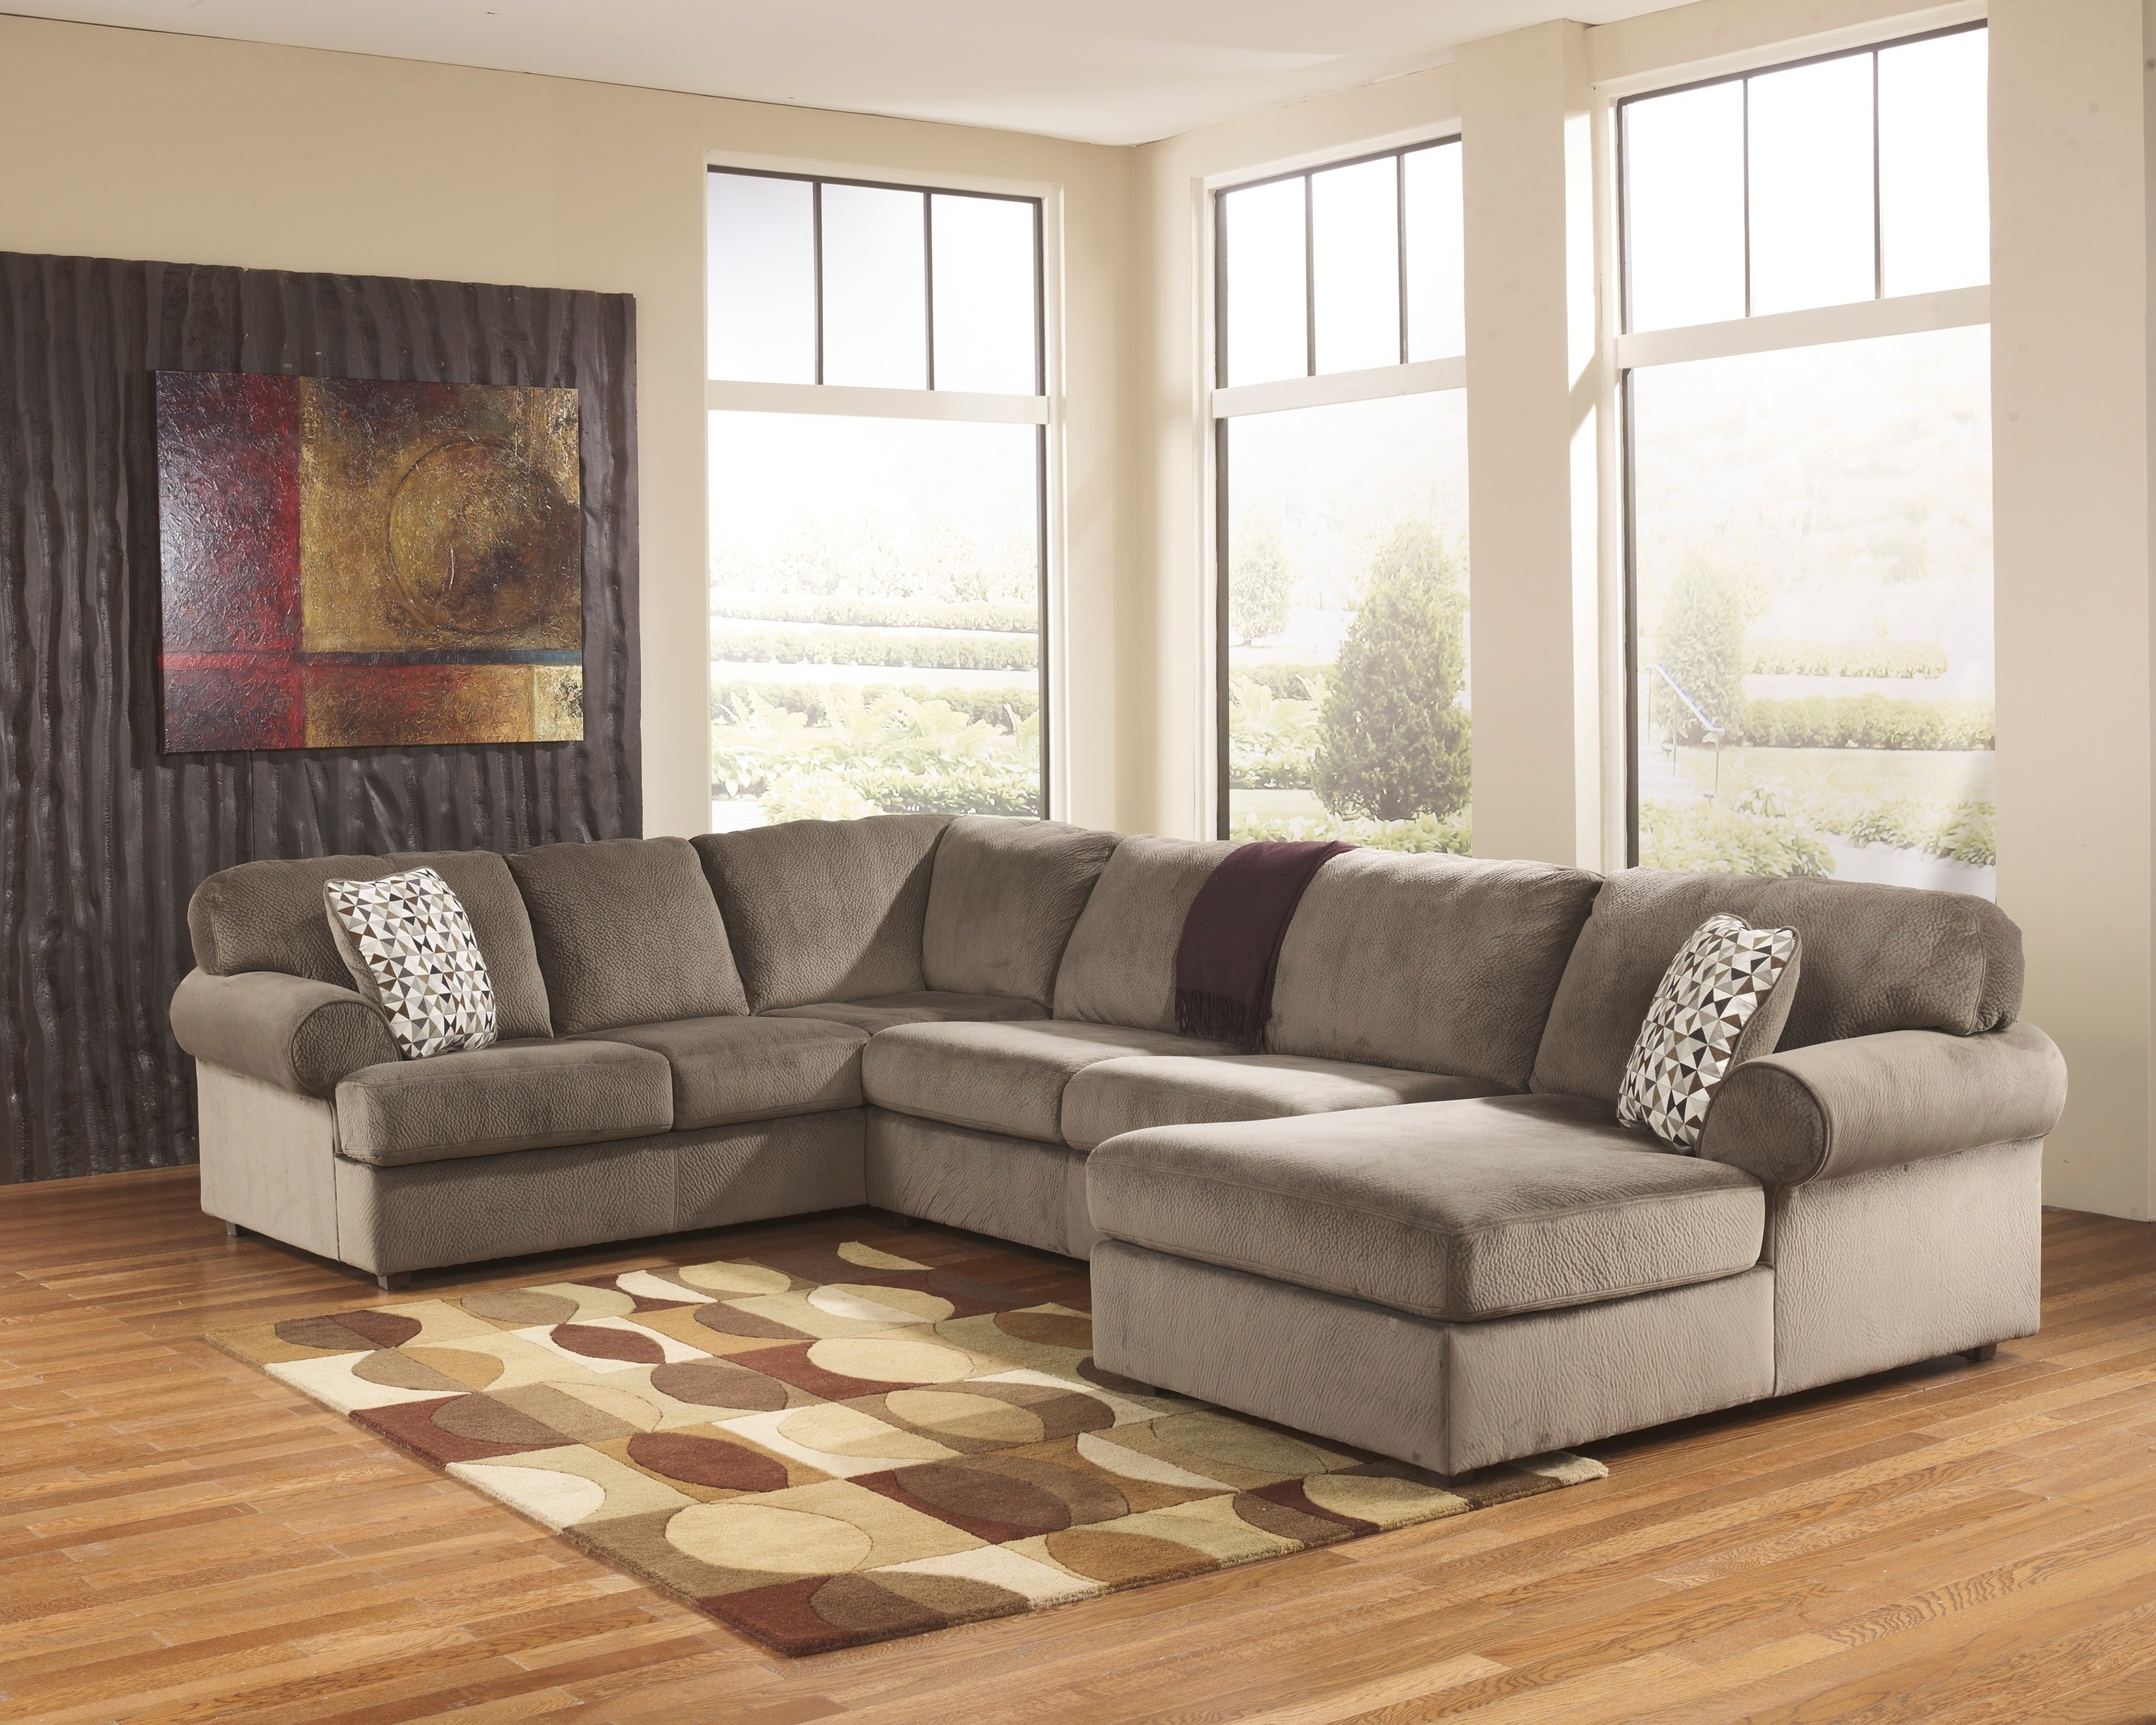 Elk Grove Ca Sectional Sofas For Well Known Jessa Place Dune 3 Piece Sectional Sofa For $ (View 4 of 20)